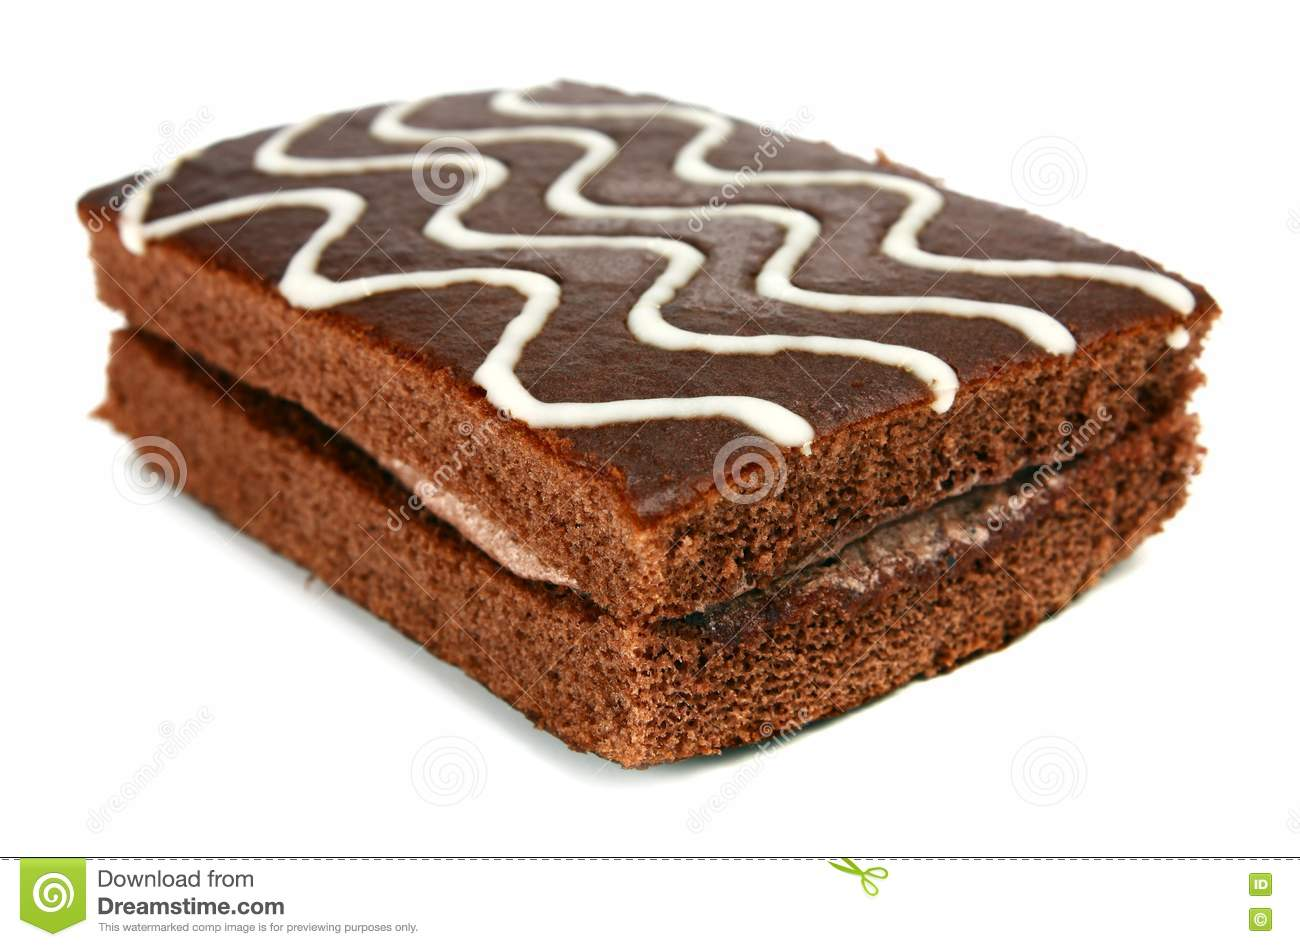 chocolate-pastry-cream-18365754.jpg